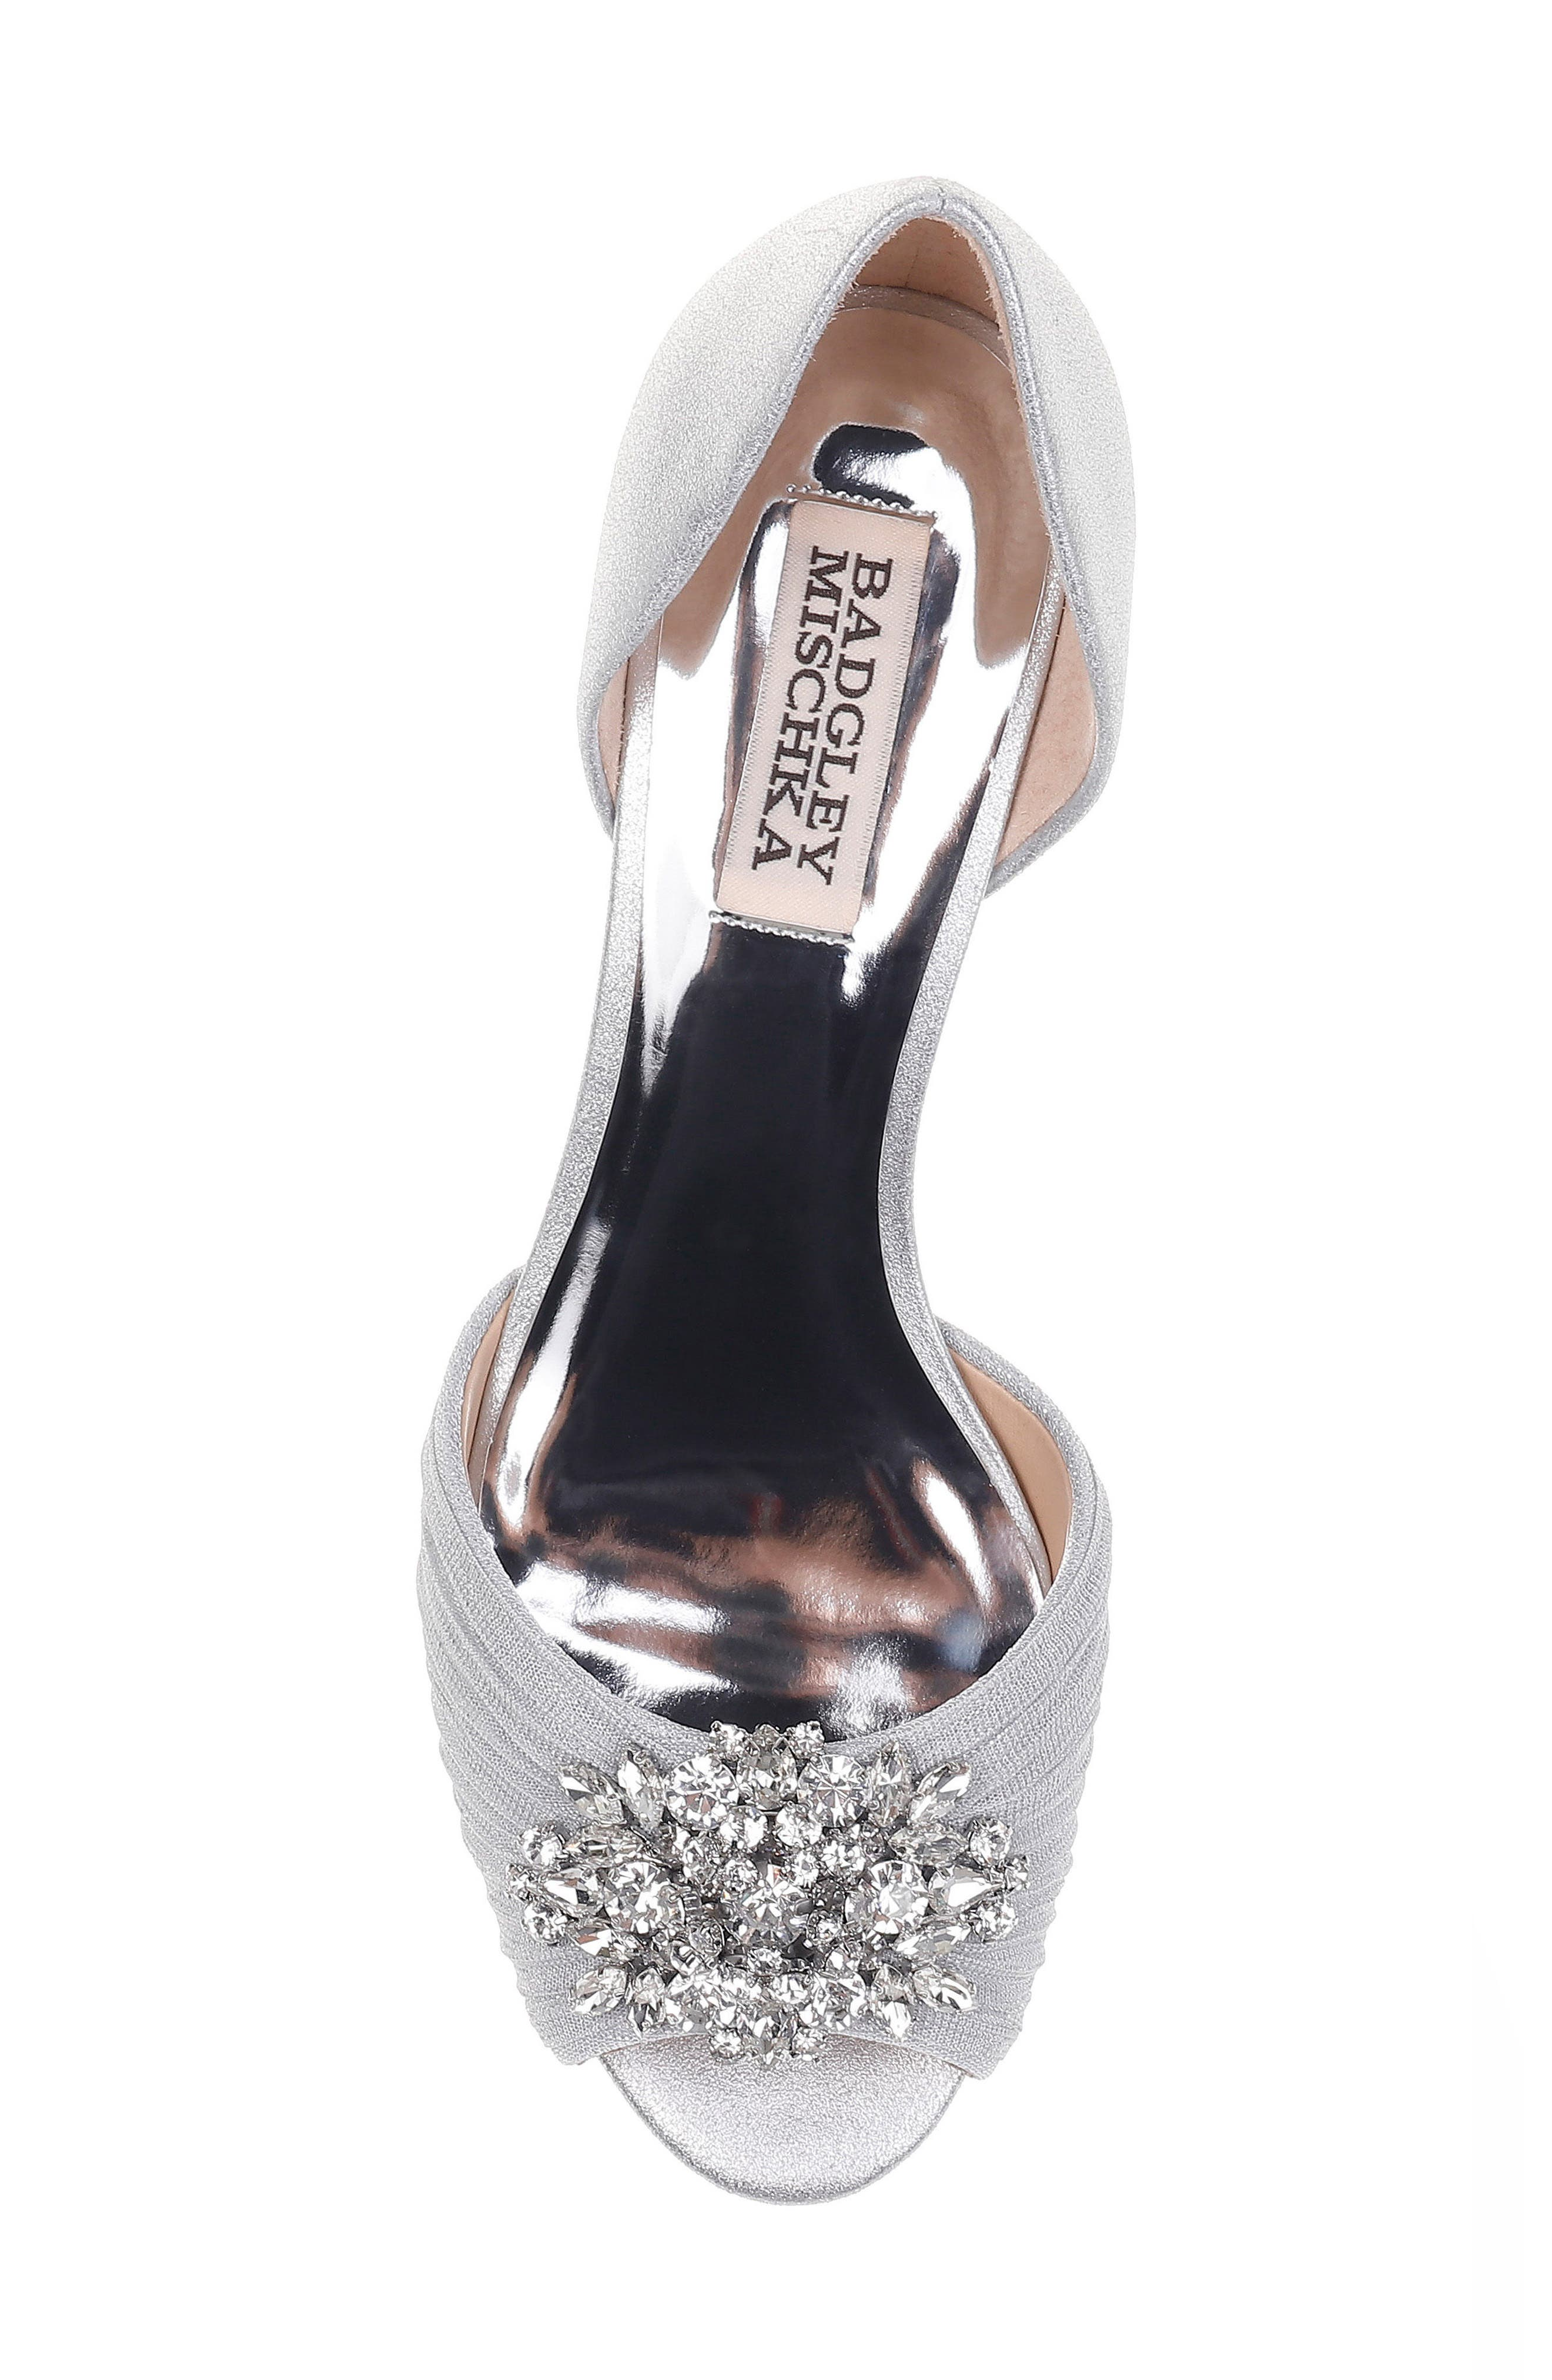 Sabine II Peep Toe Pump,                             Alternate thumbnail 5, color,                             Silver Satin